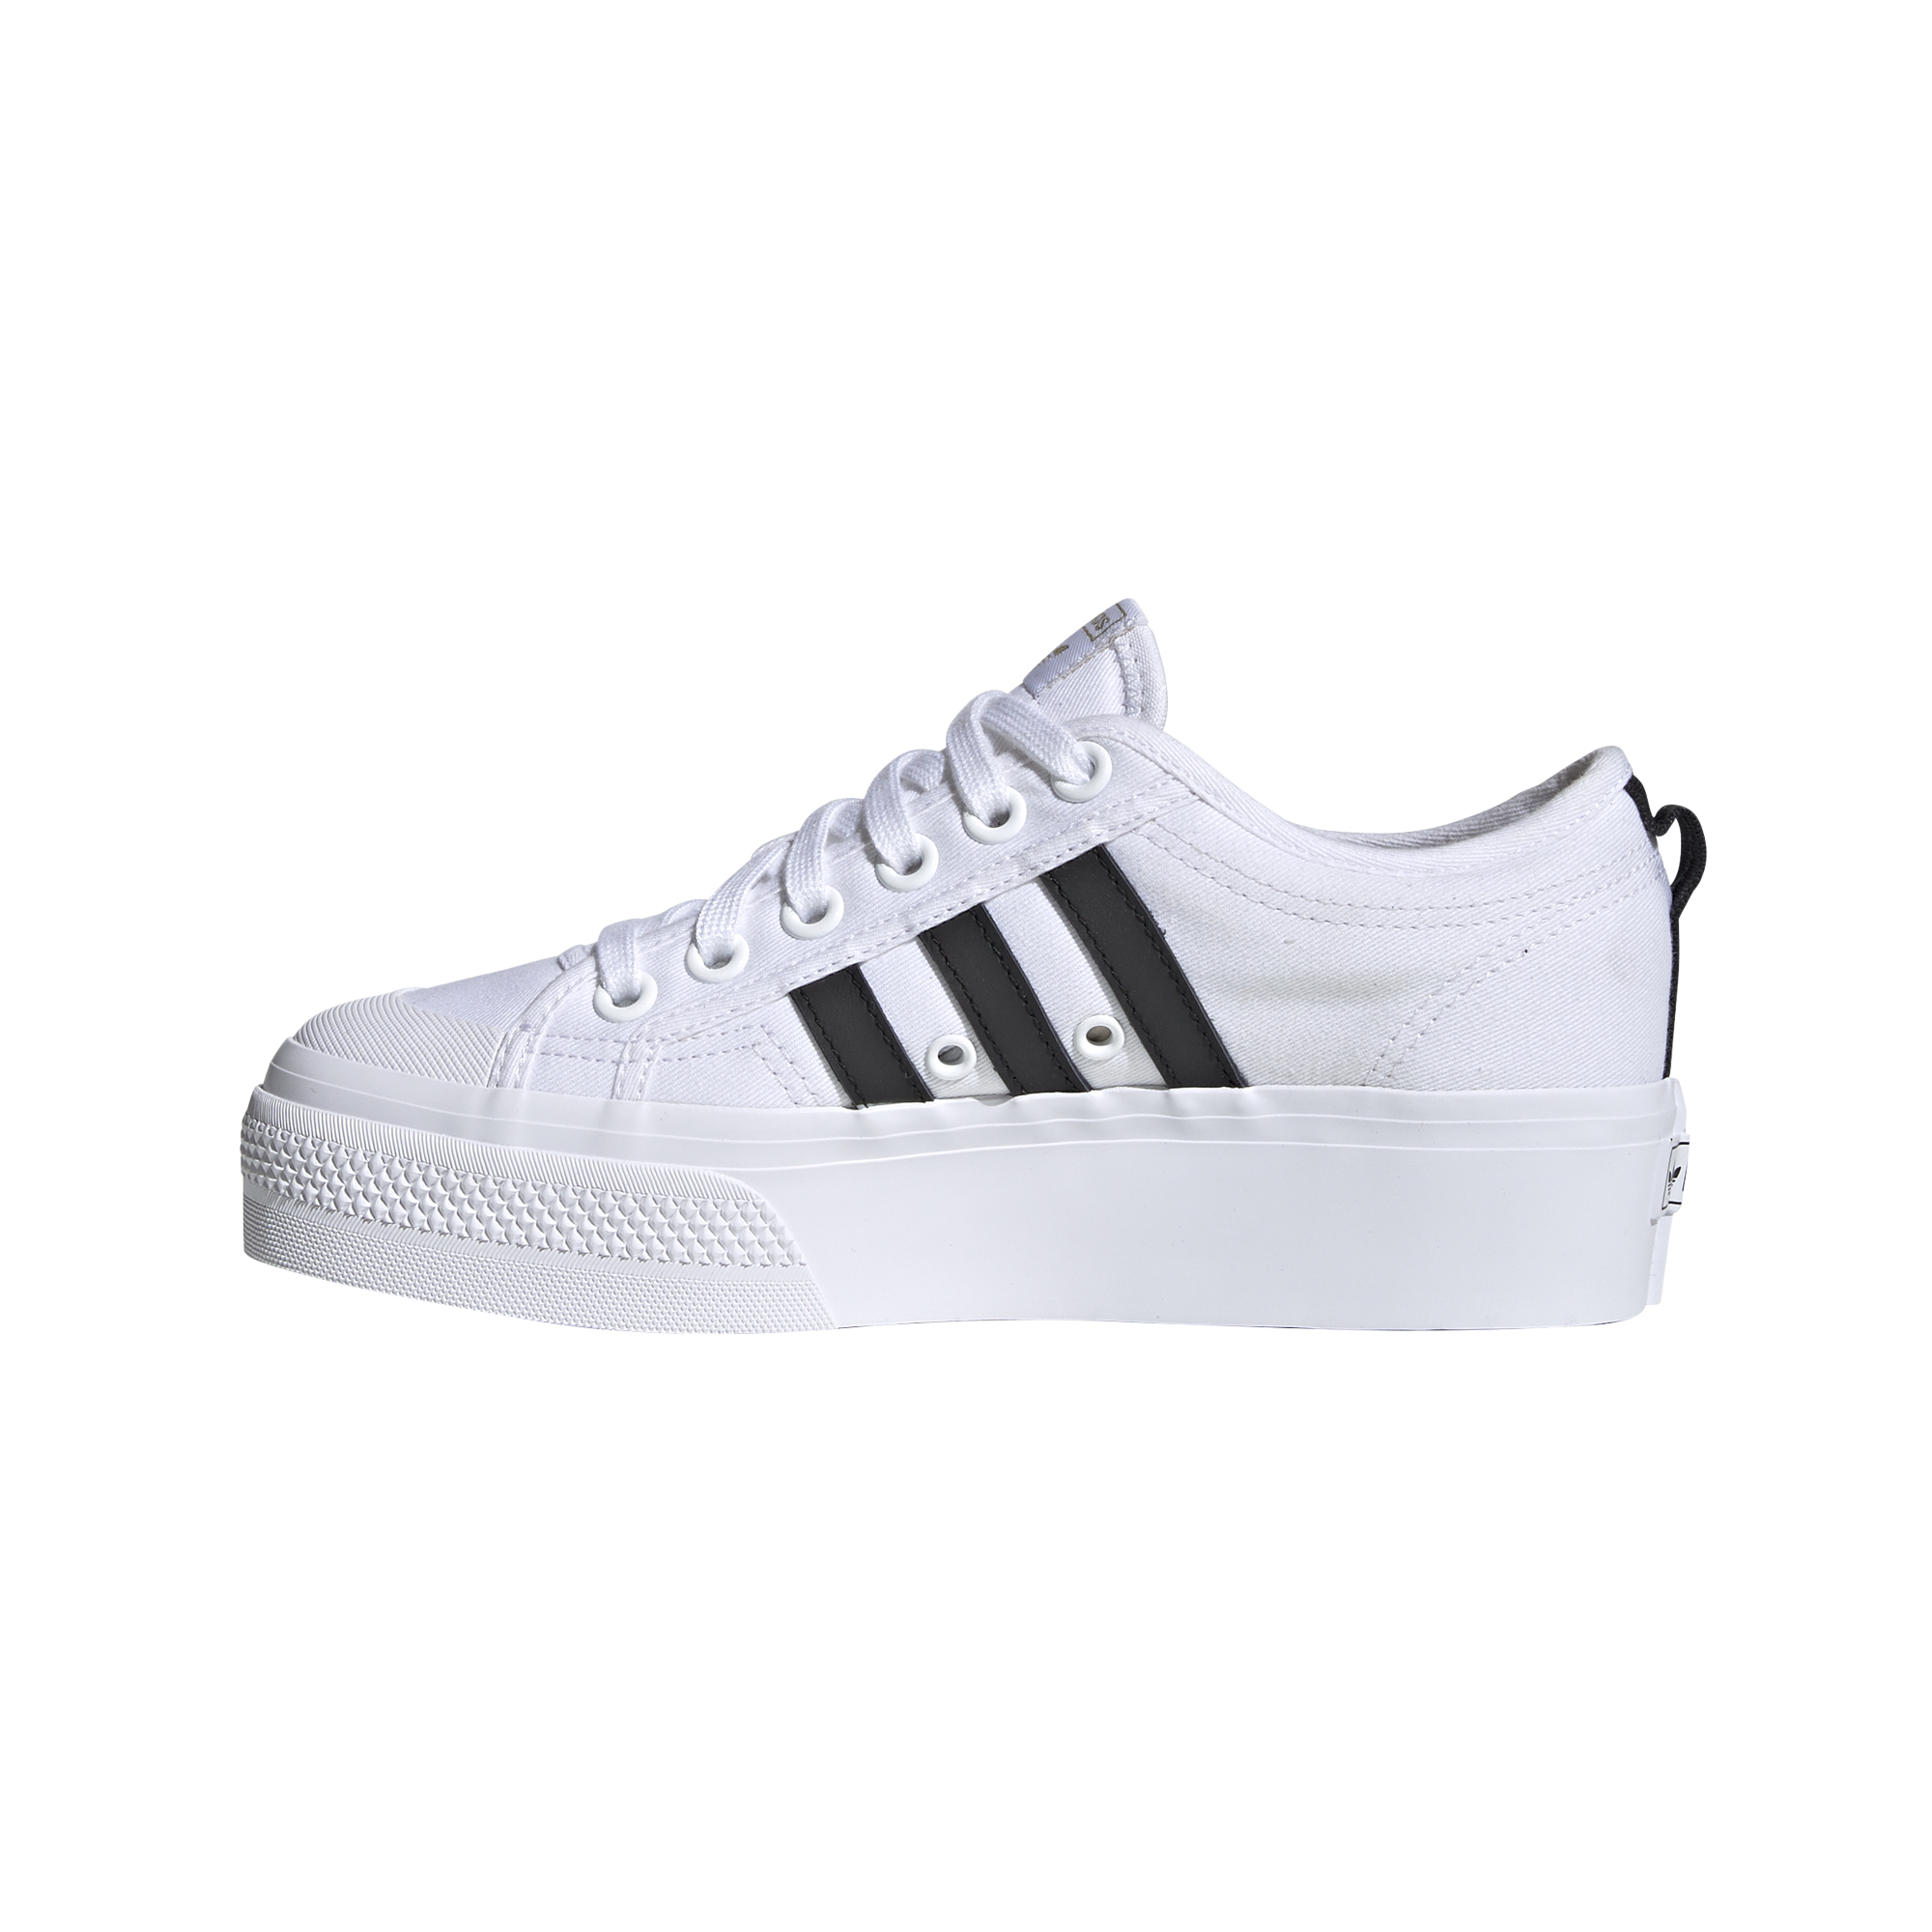 adidas Nizza Platform W Ftw White/ Core Black/ Gold Metalic FX8538